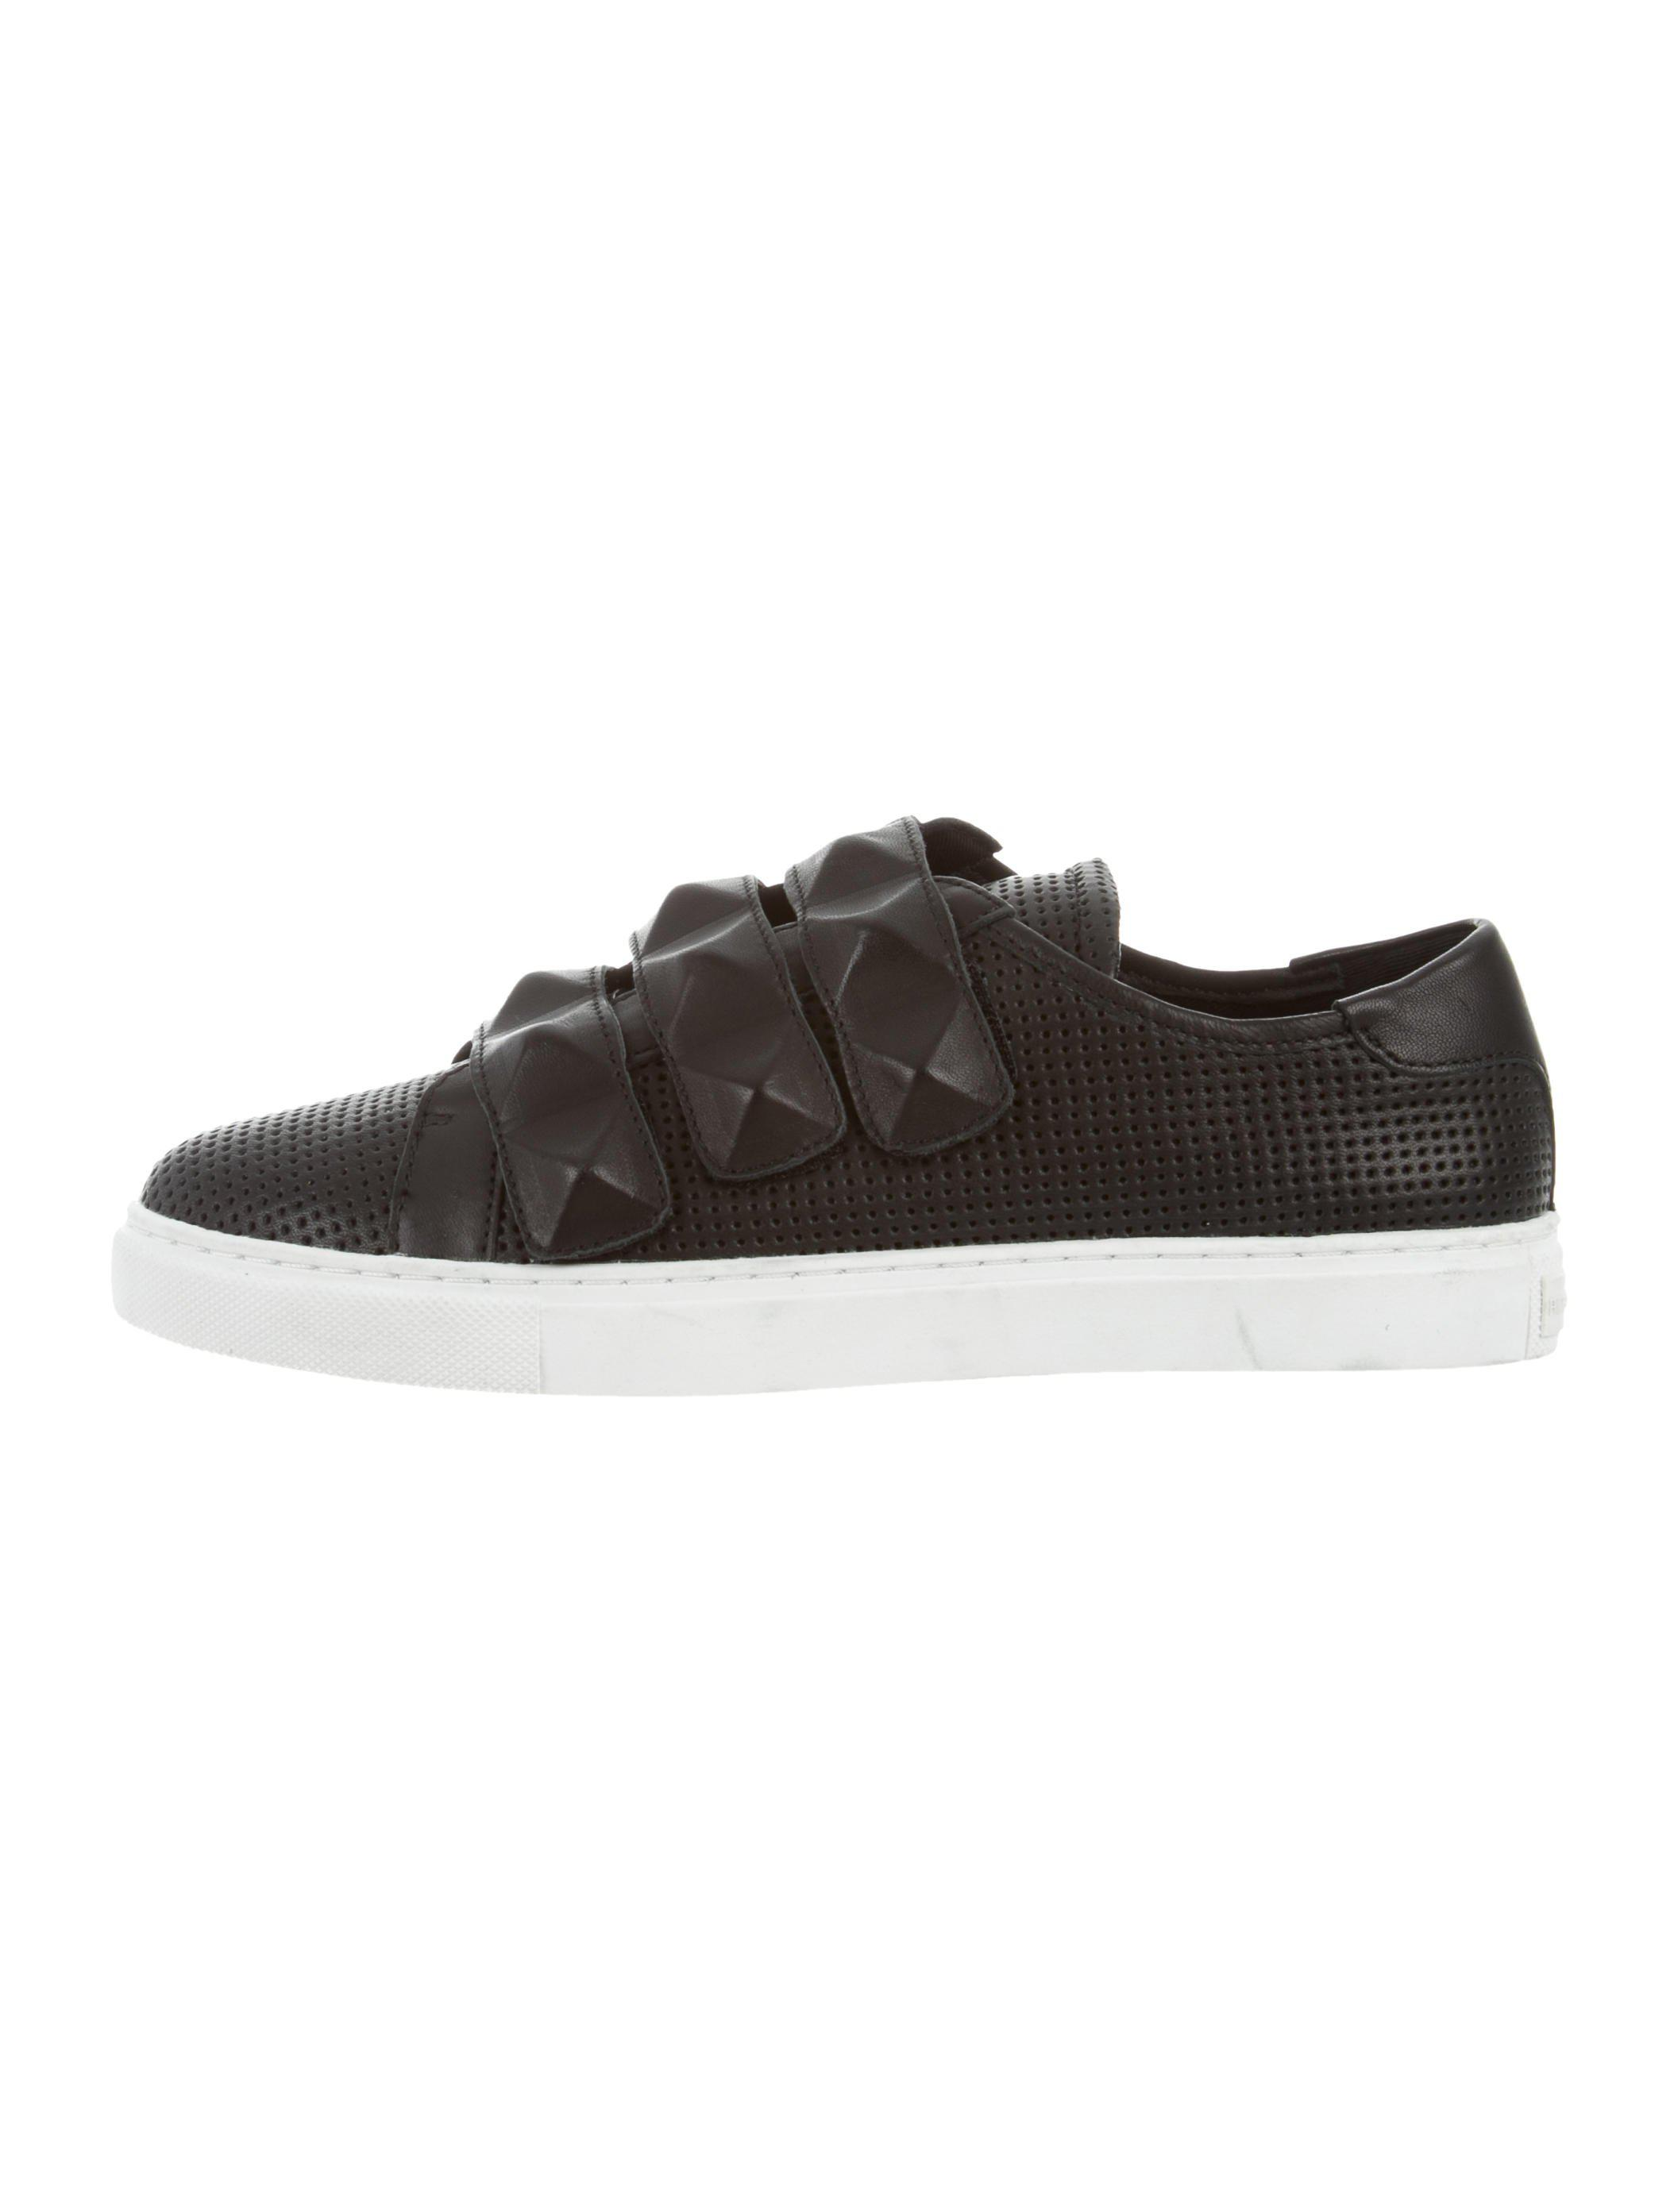 Rebecca Minkoff Low-Top Perforated Sneakers clearance clearance store cheap sale best OGxaID